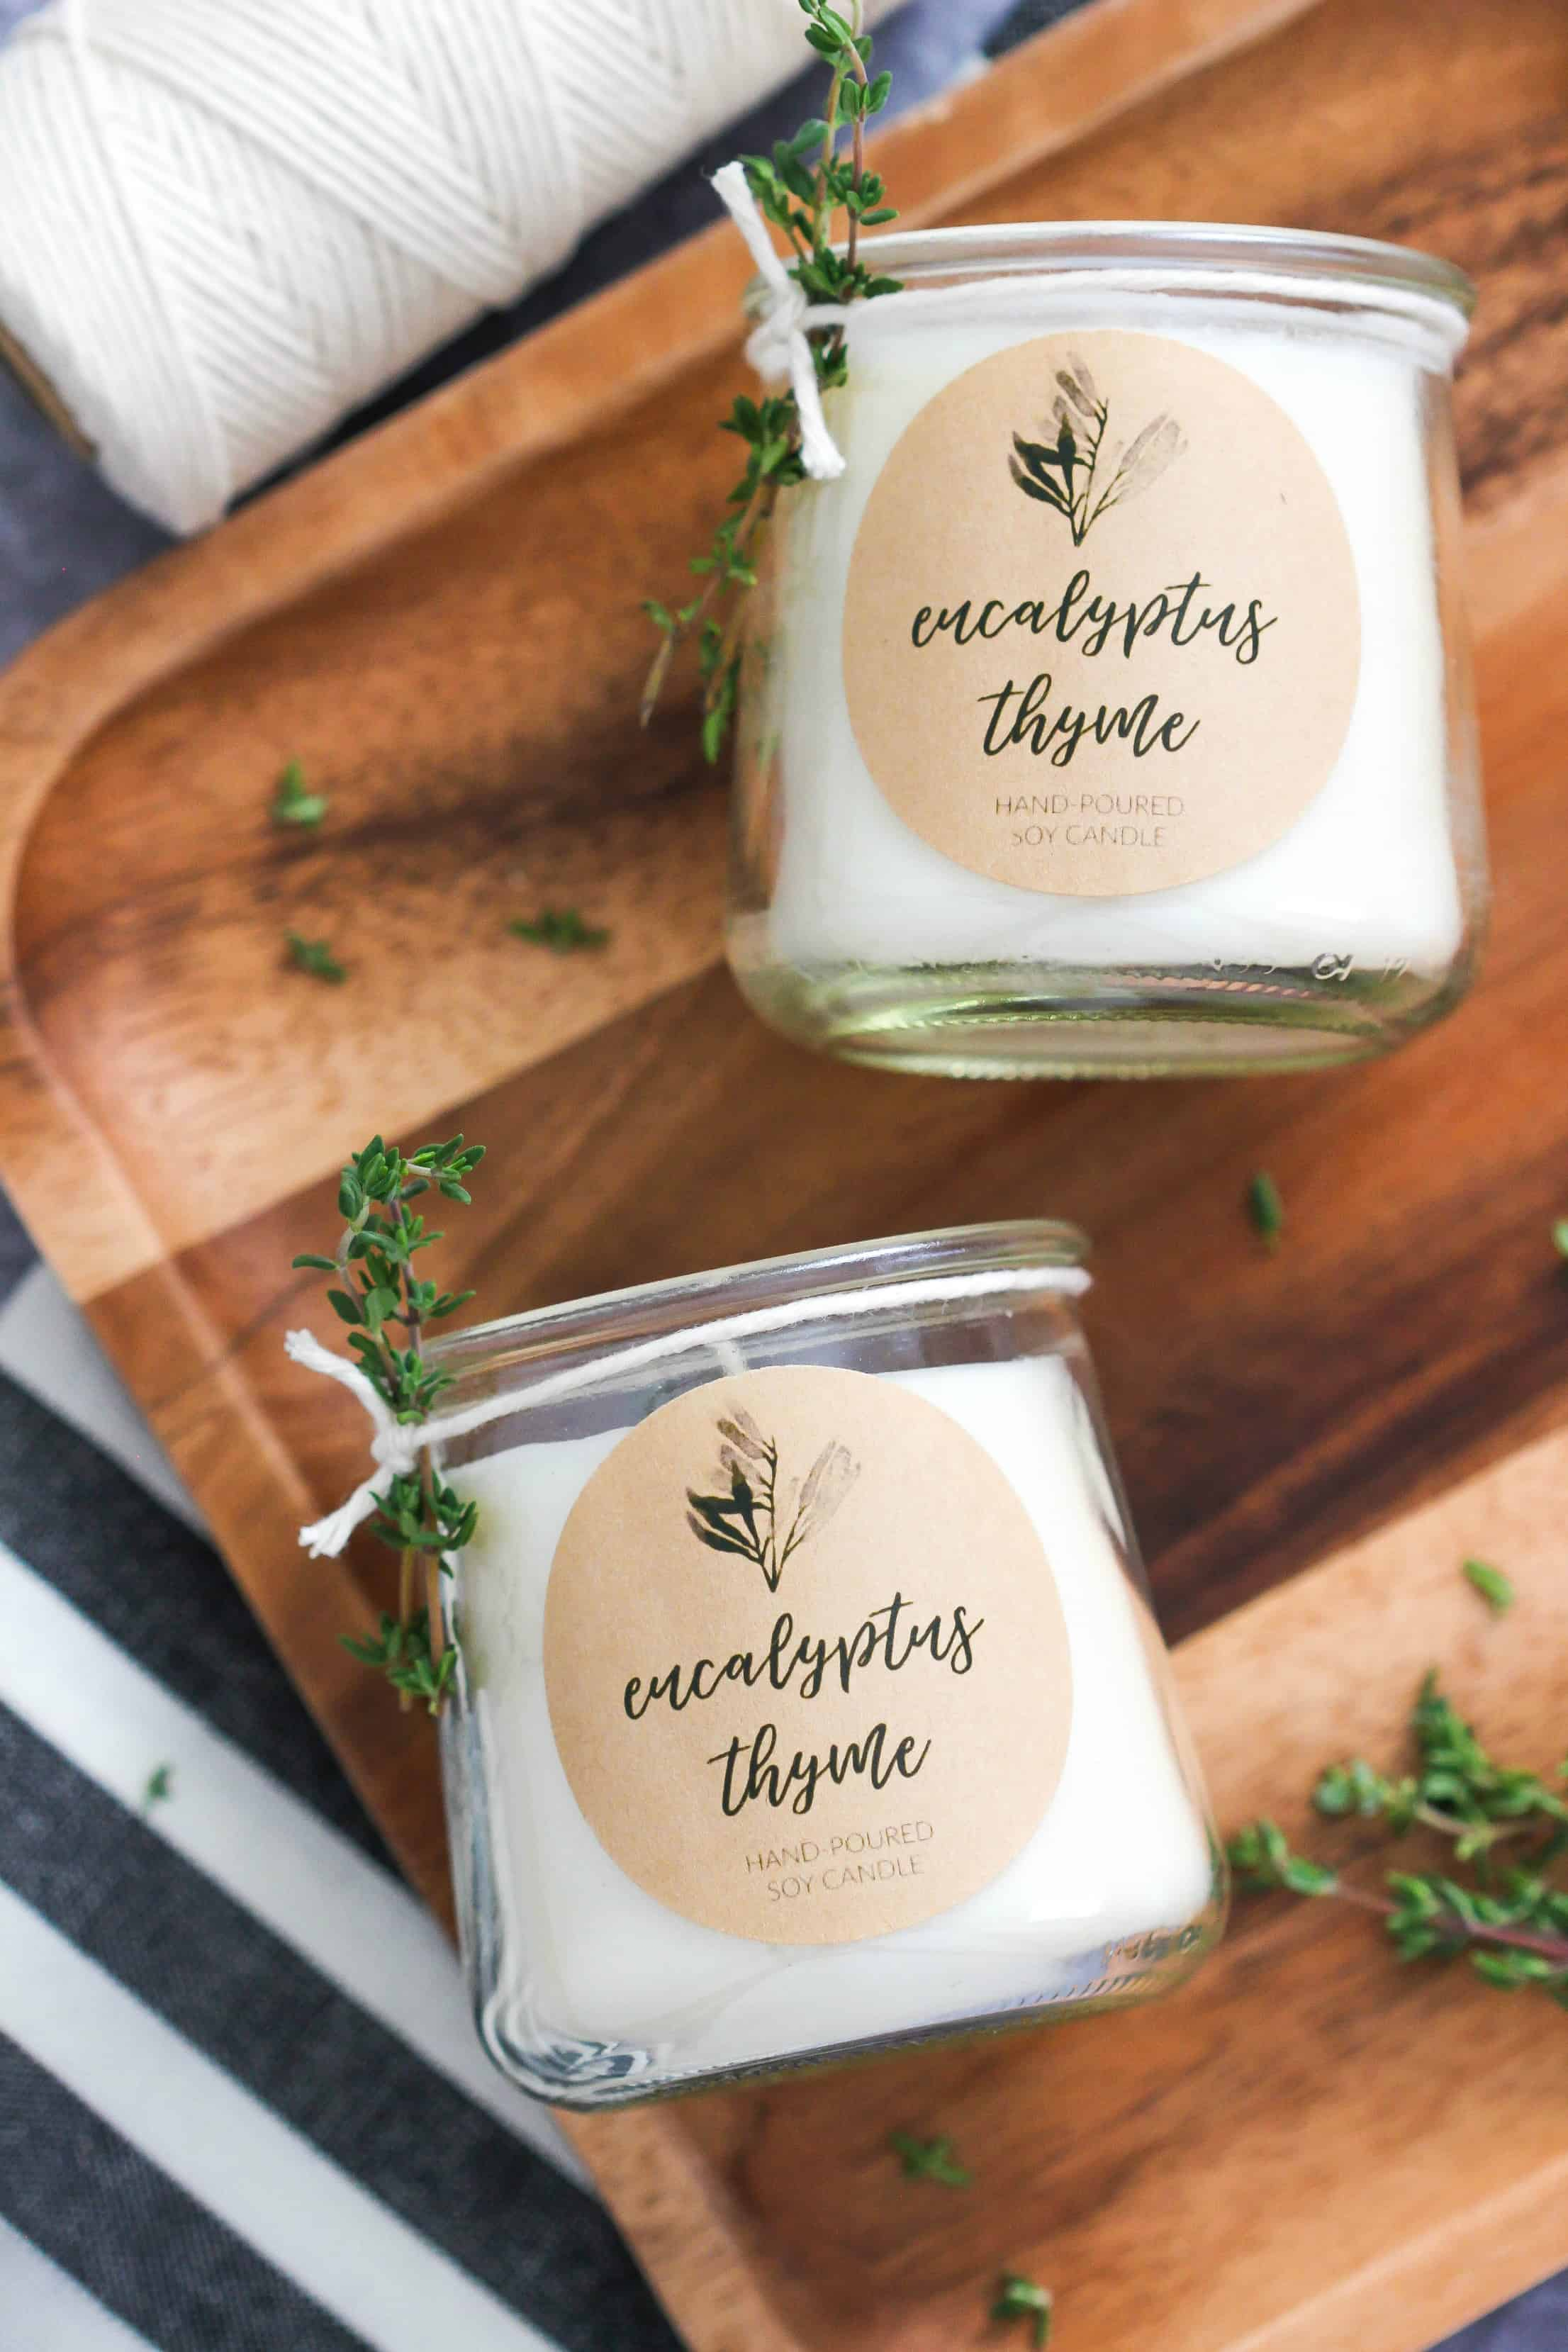 DIY Eucalyptus & Thyme Soy Candle with printable label is a simple candle recipe made with essential oils and a wonderful gift idea! #diycandle #soycandle #candlemaking